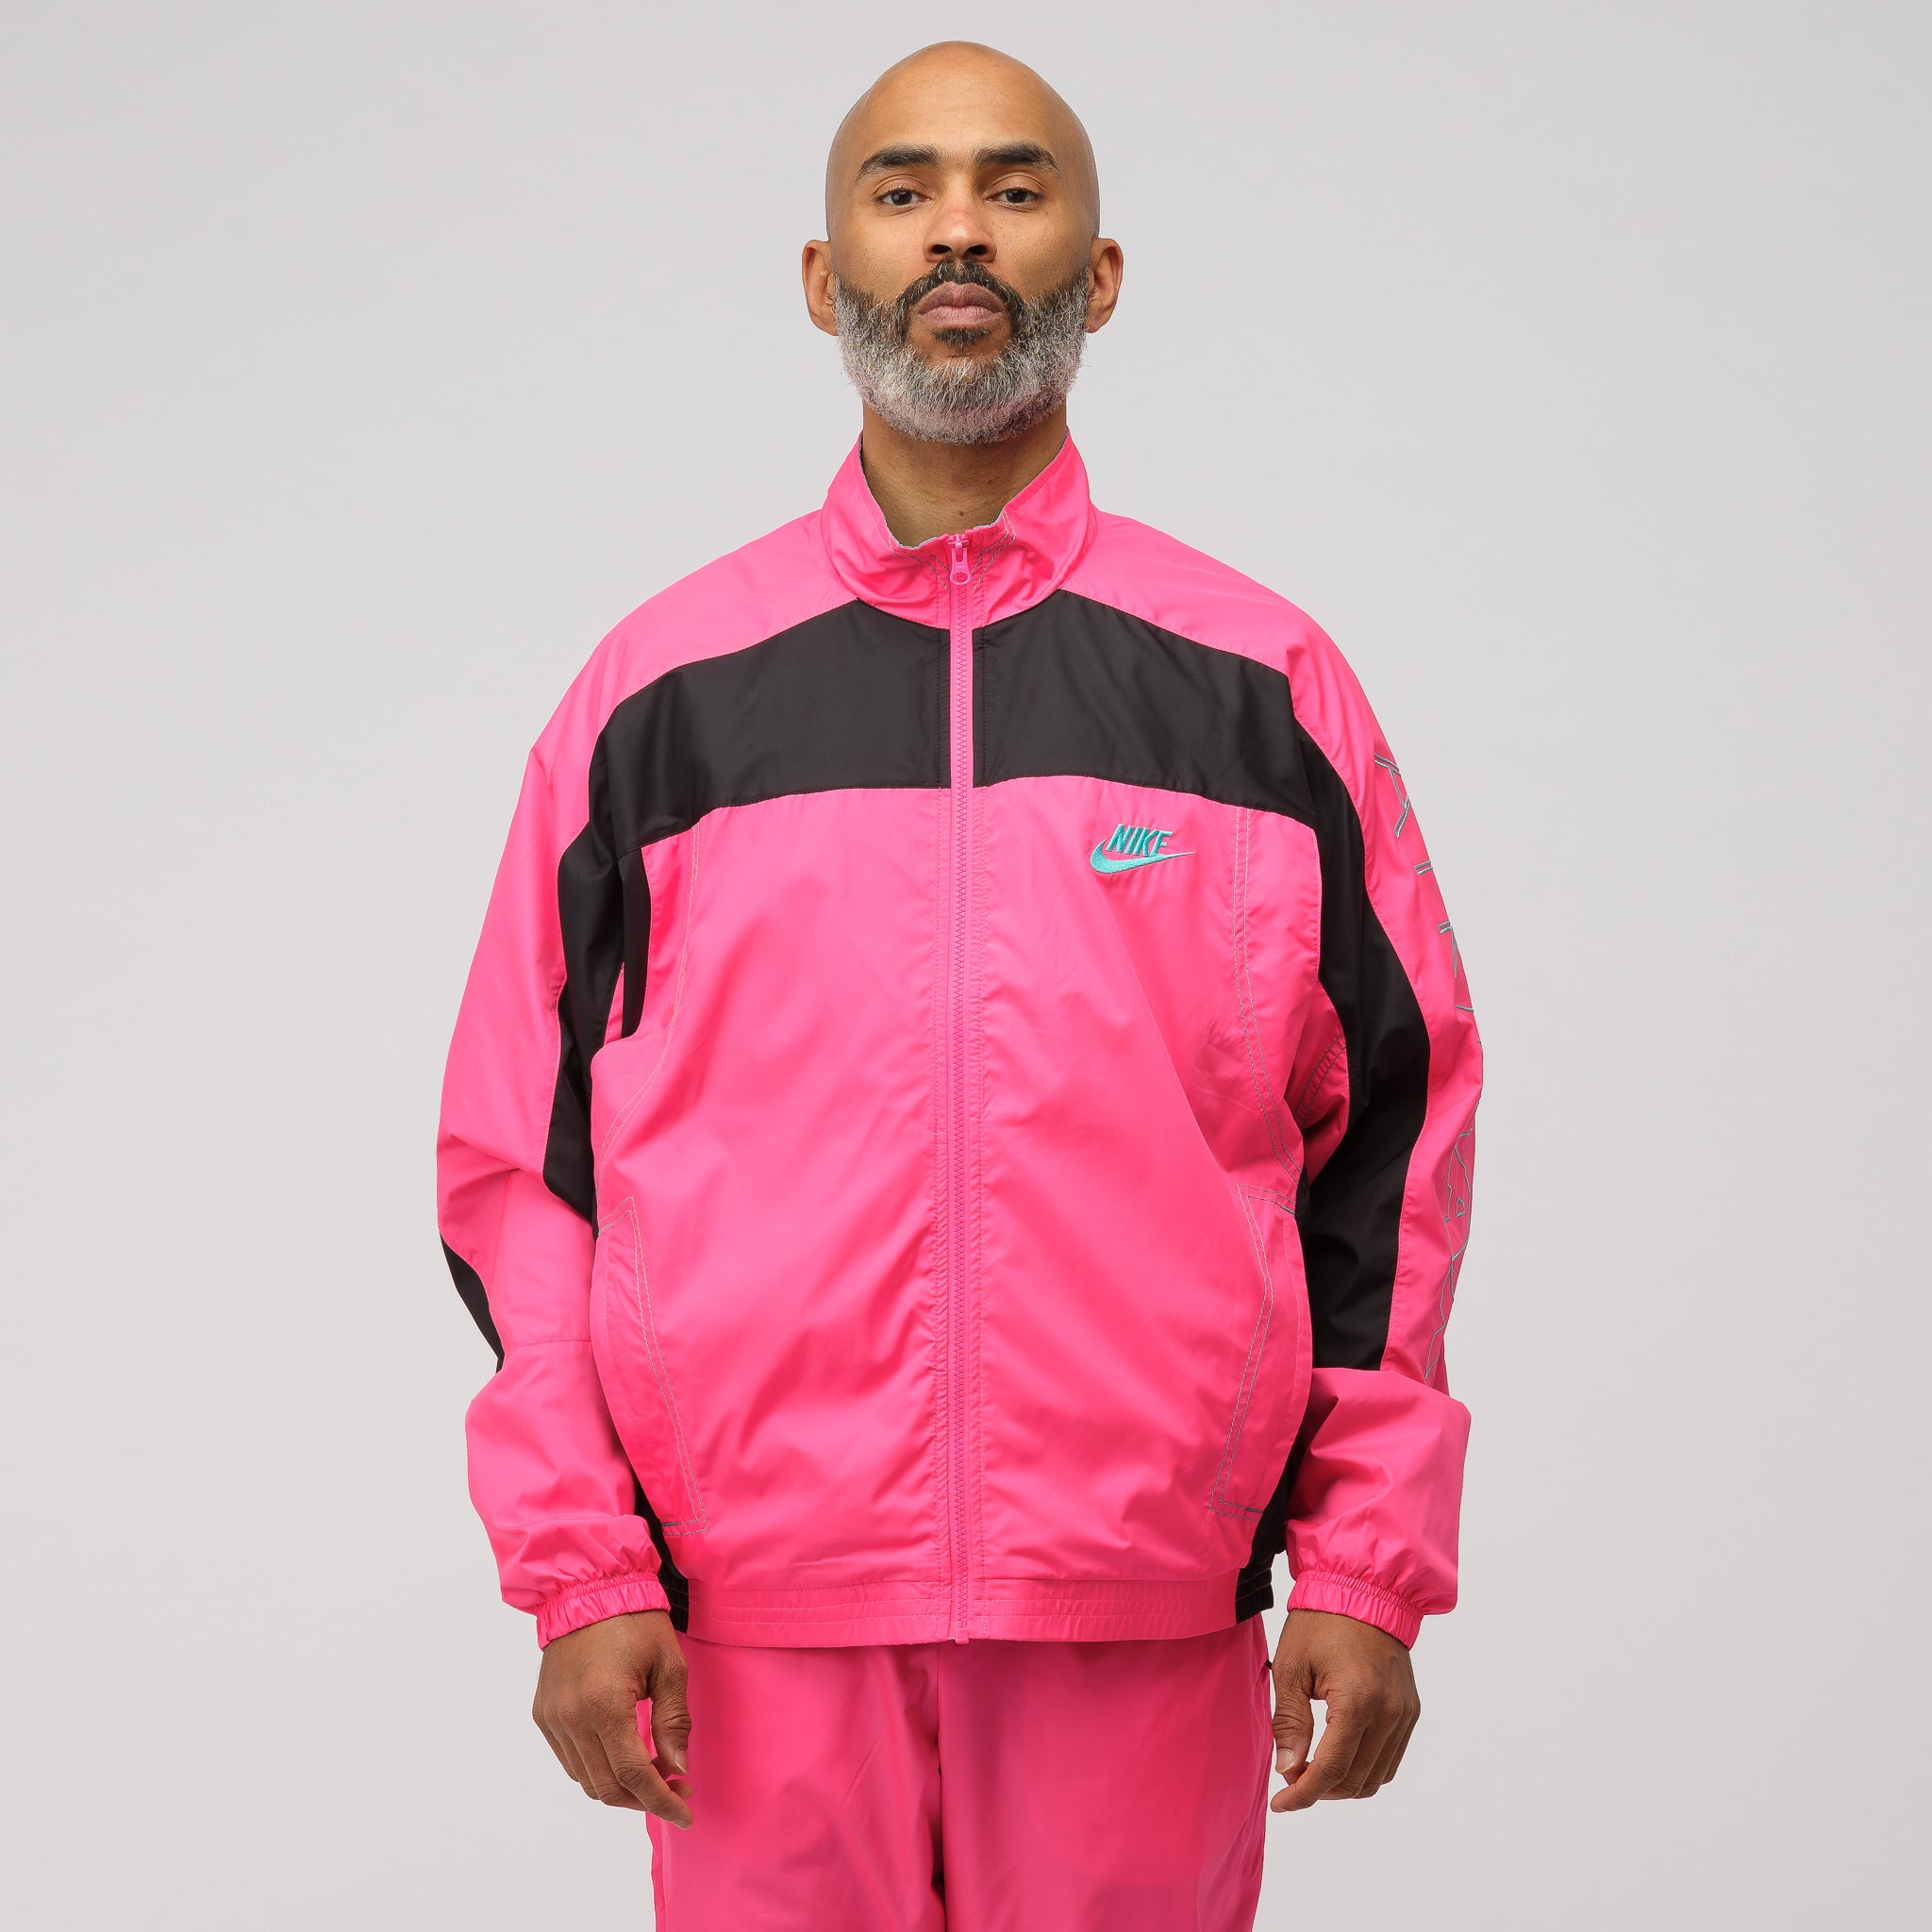 x Atmos Track Jacket in Pink/Black